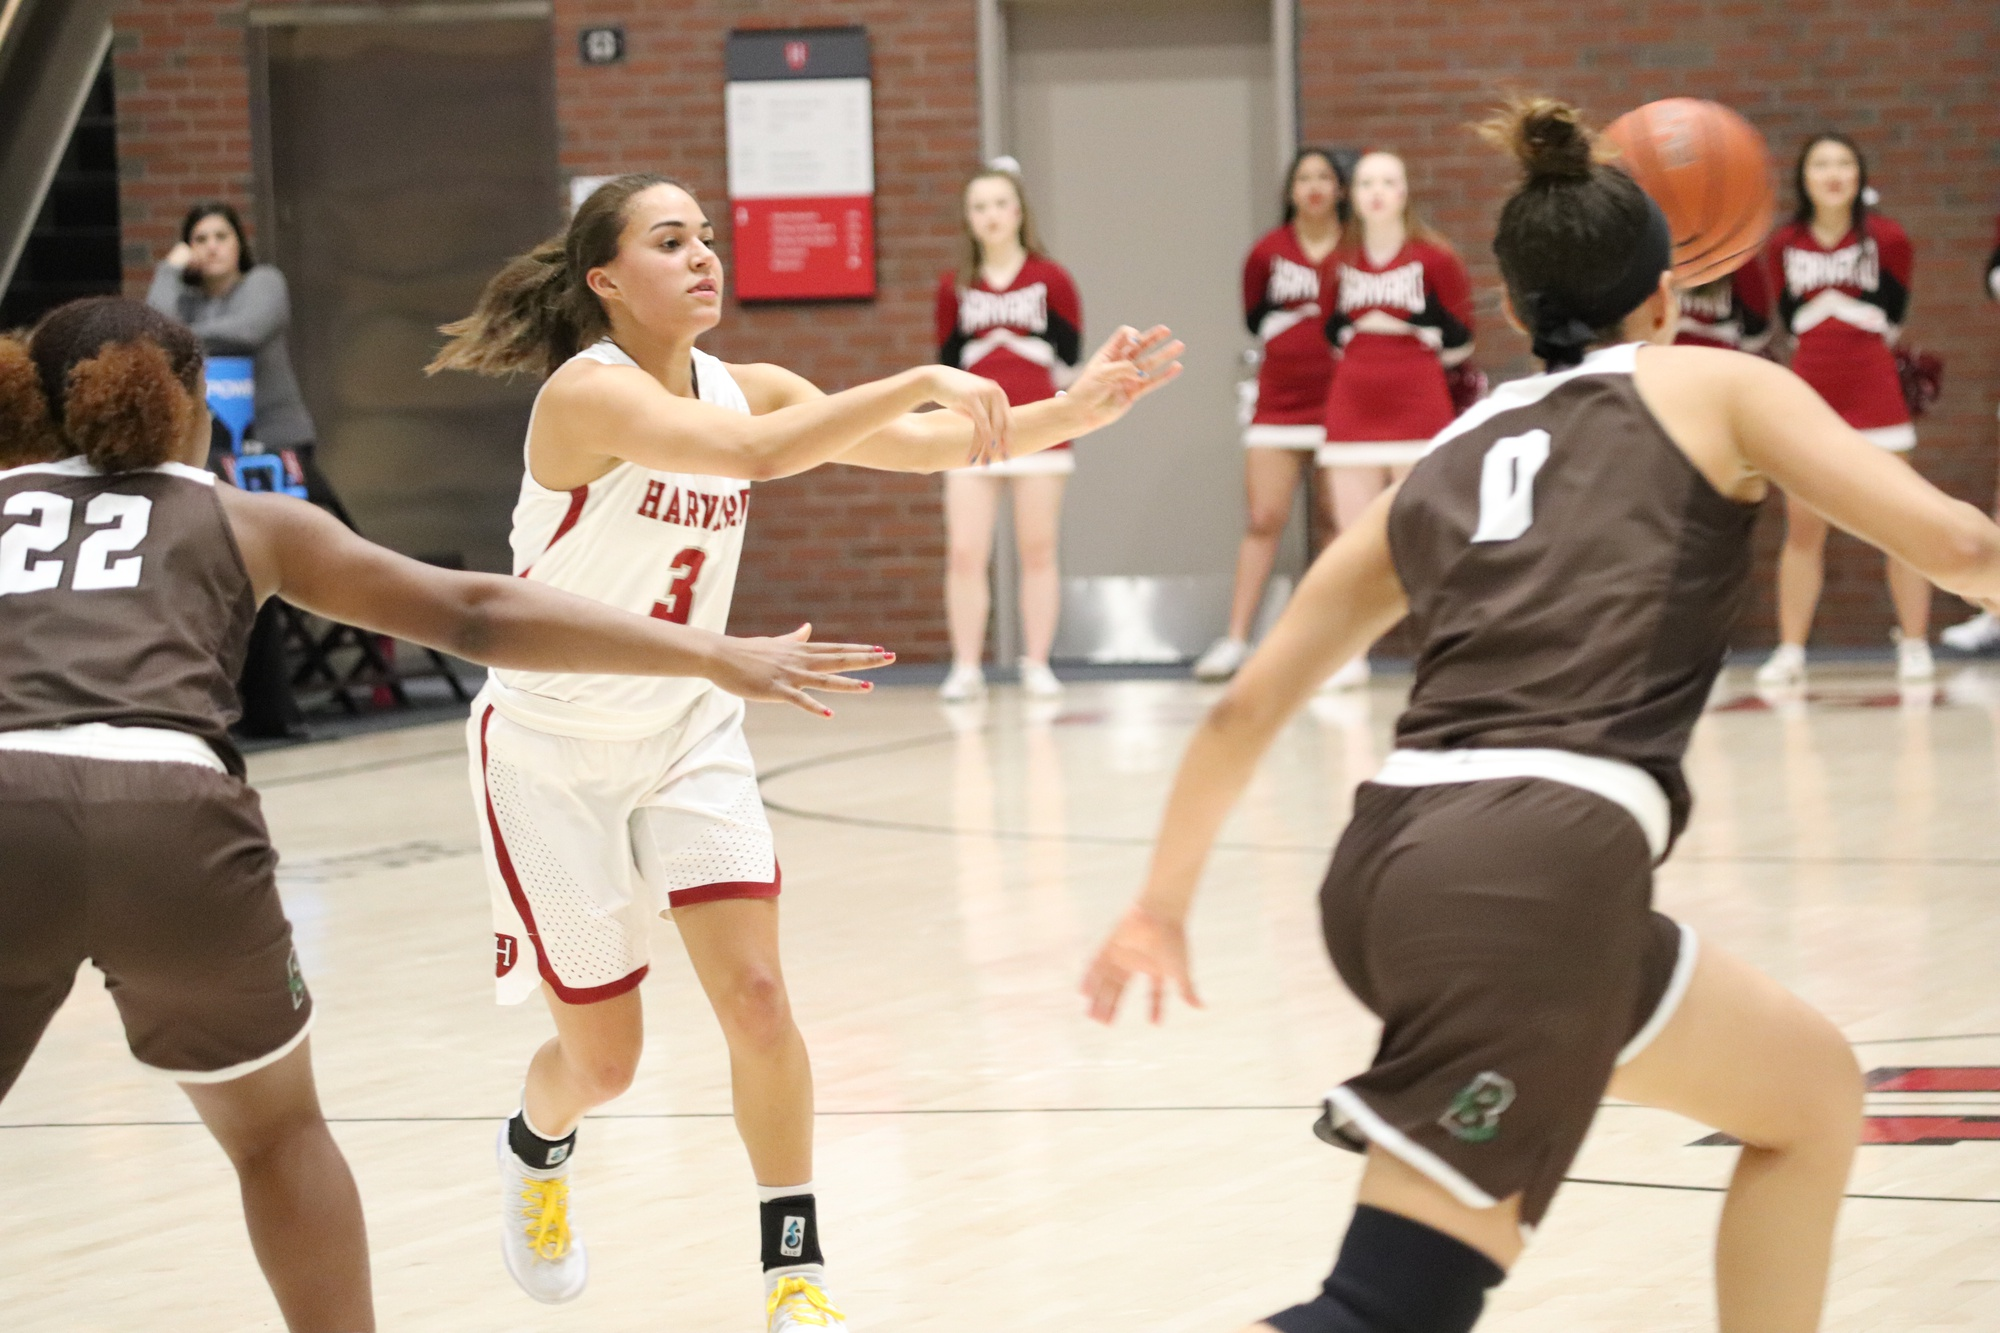 Katie Benzan surpassed Erin Maher '93's record for career three-pointers, knocking down her 262nd trey early in the third quarter.